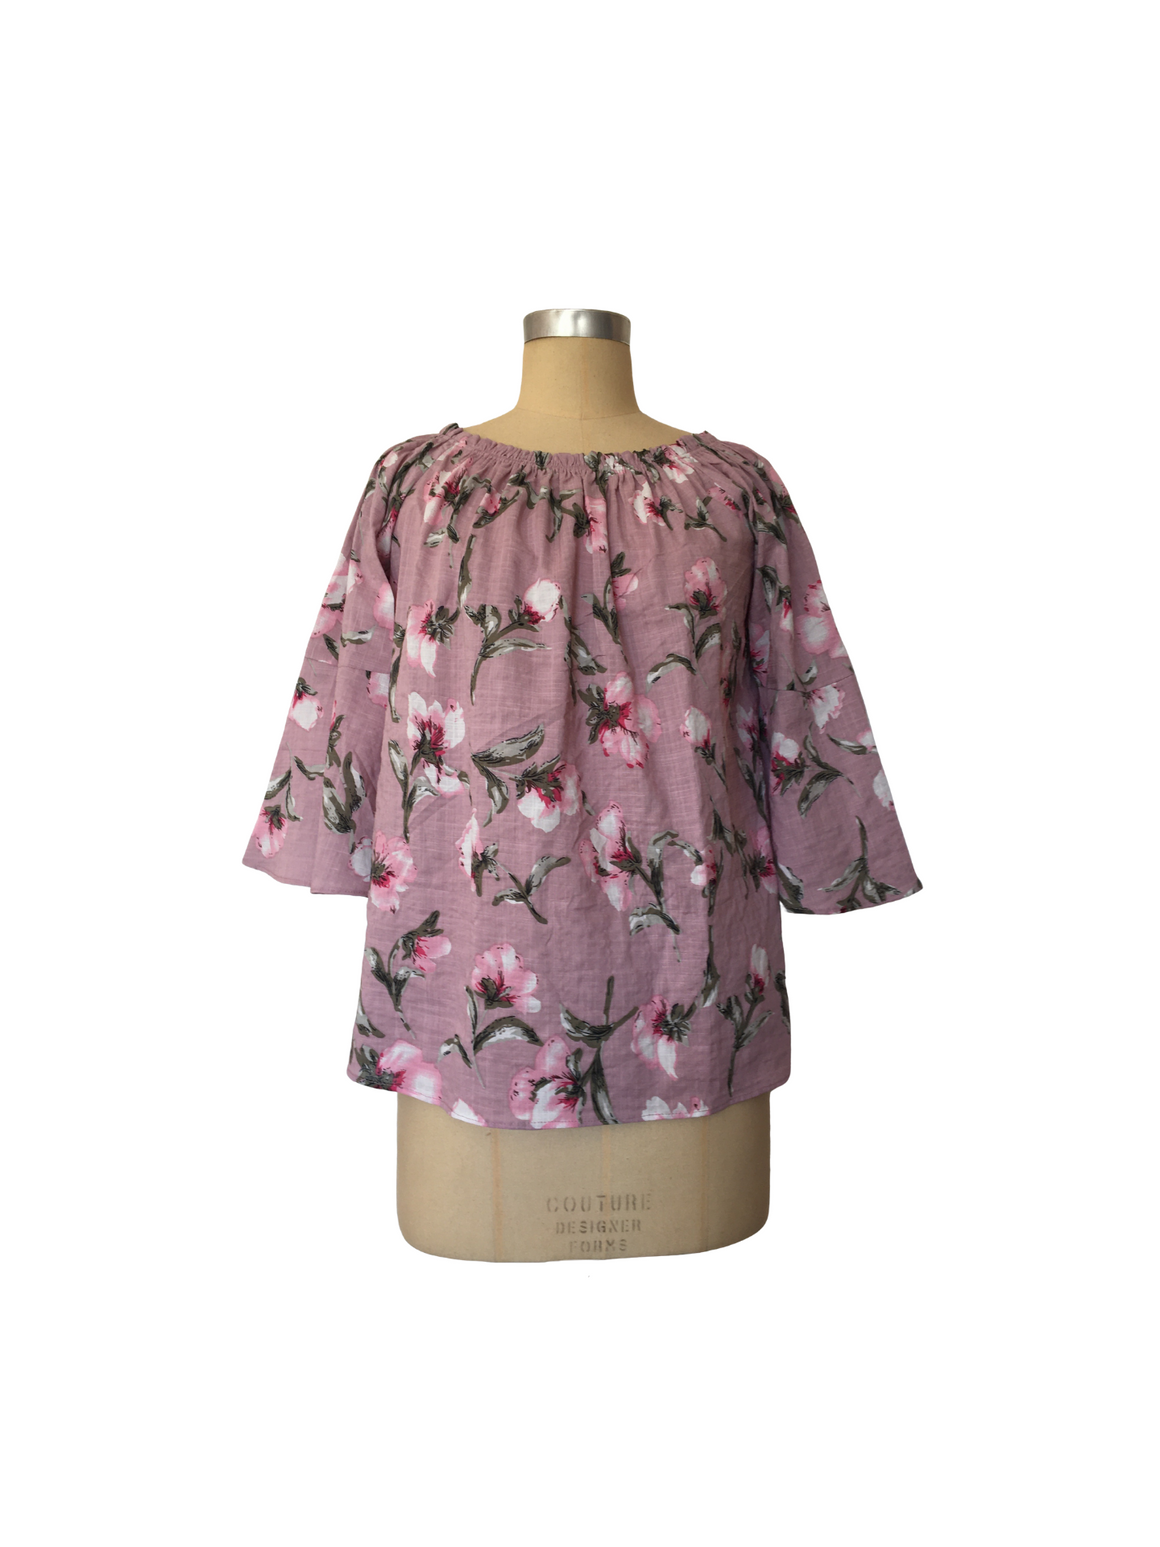 Bell Sleeve Top - Musk